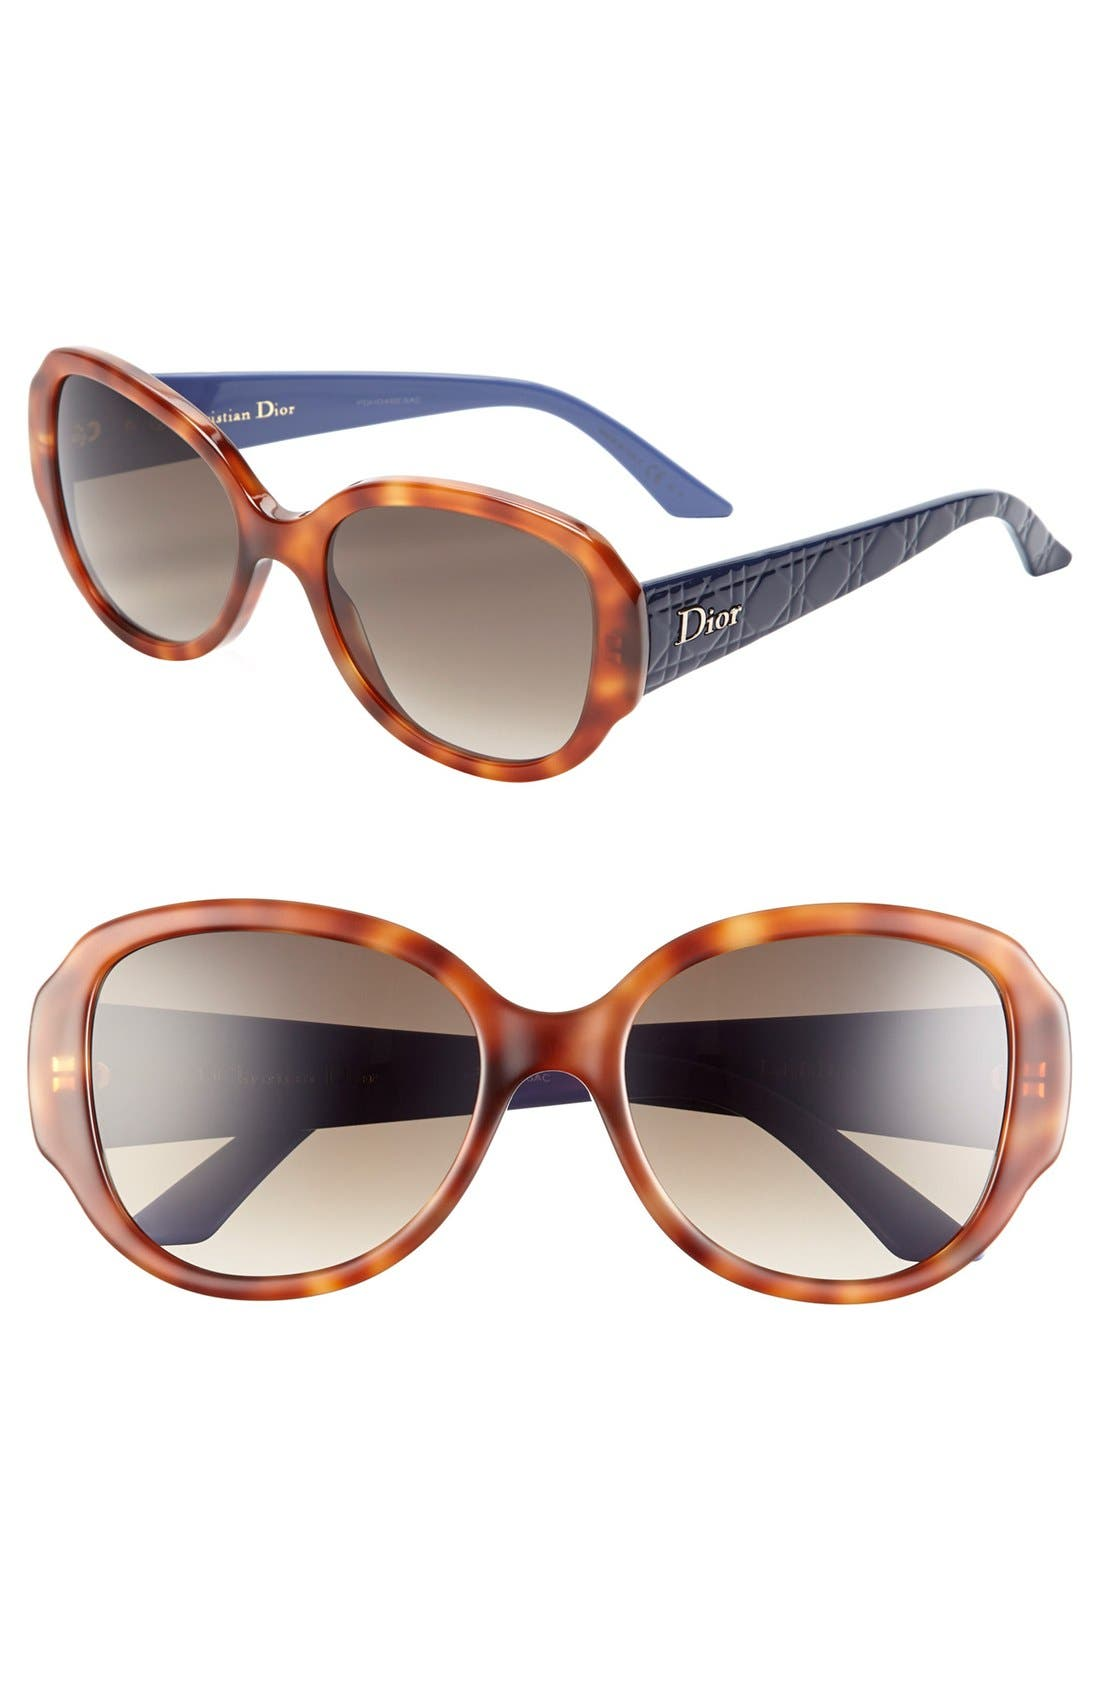 Main Image - Dior 'Lady in Dior' 55mm Sunglasses